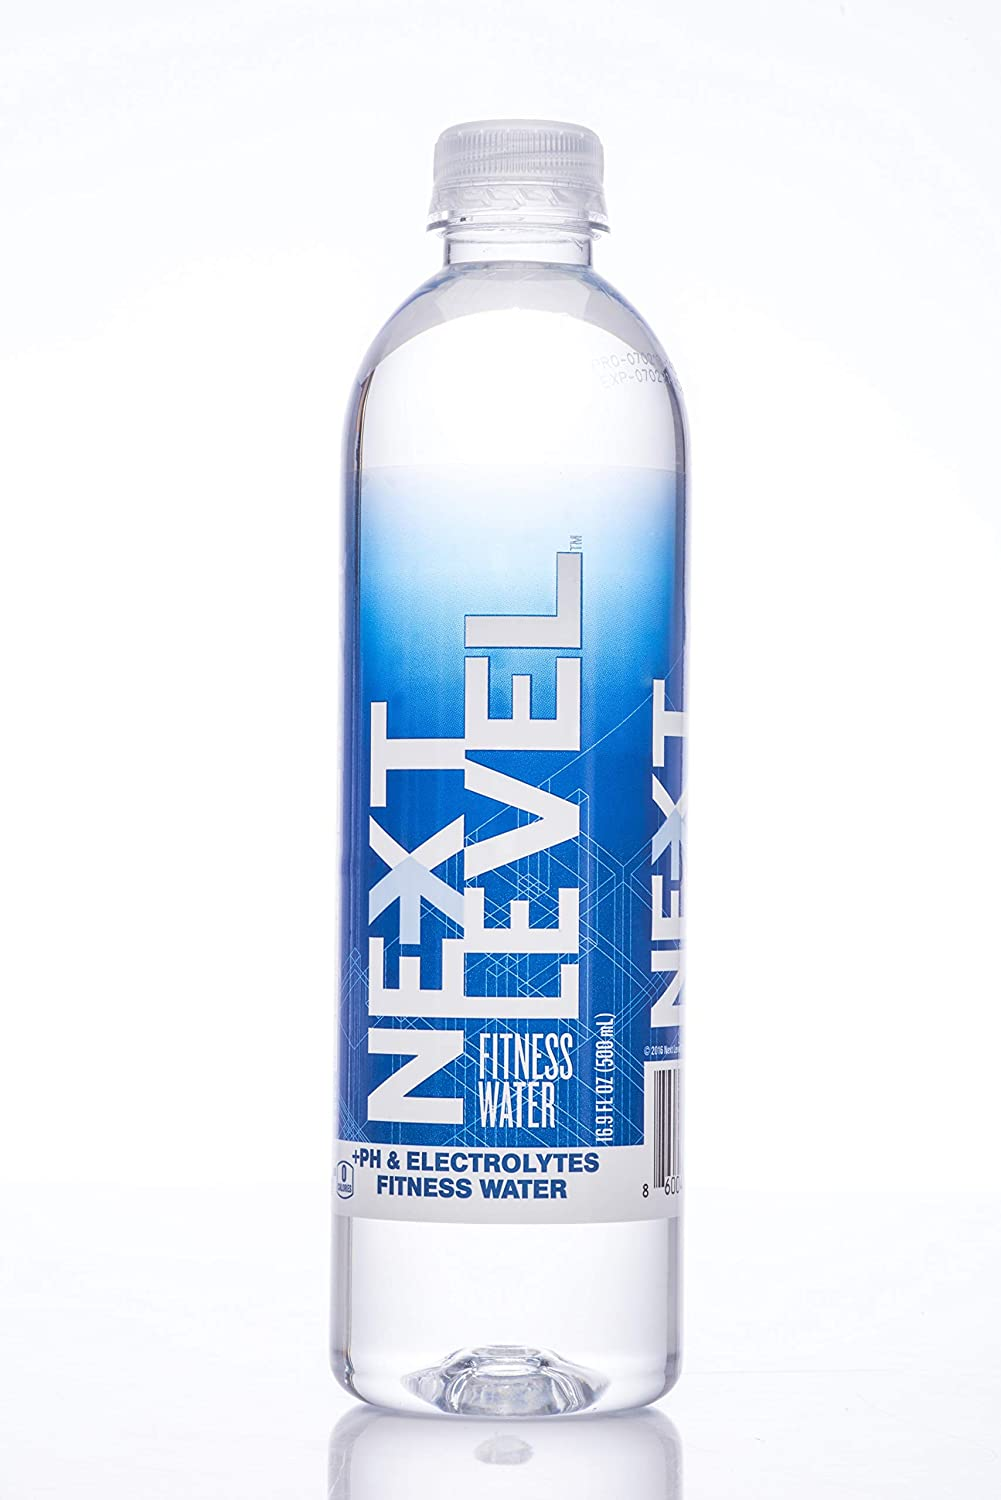 NEXT LEVEL Fitness Water, Premium bottled water, Spring Water infused with natural pH and electrolytes 16.9 FL OZ (24)